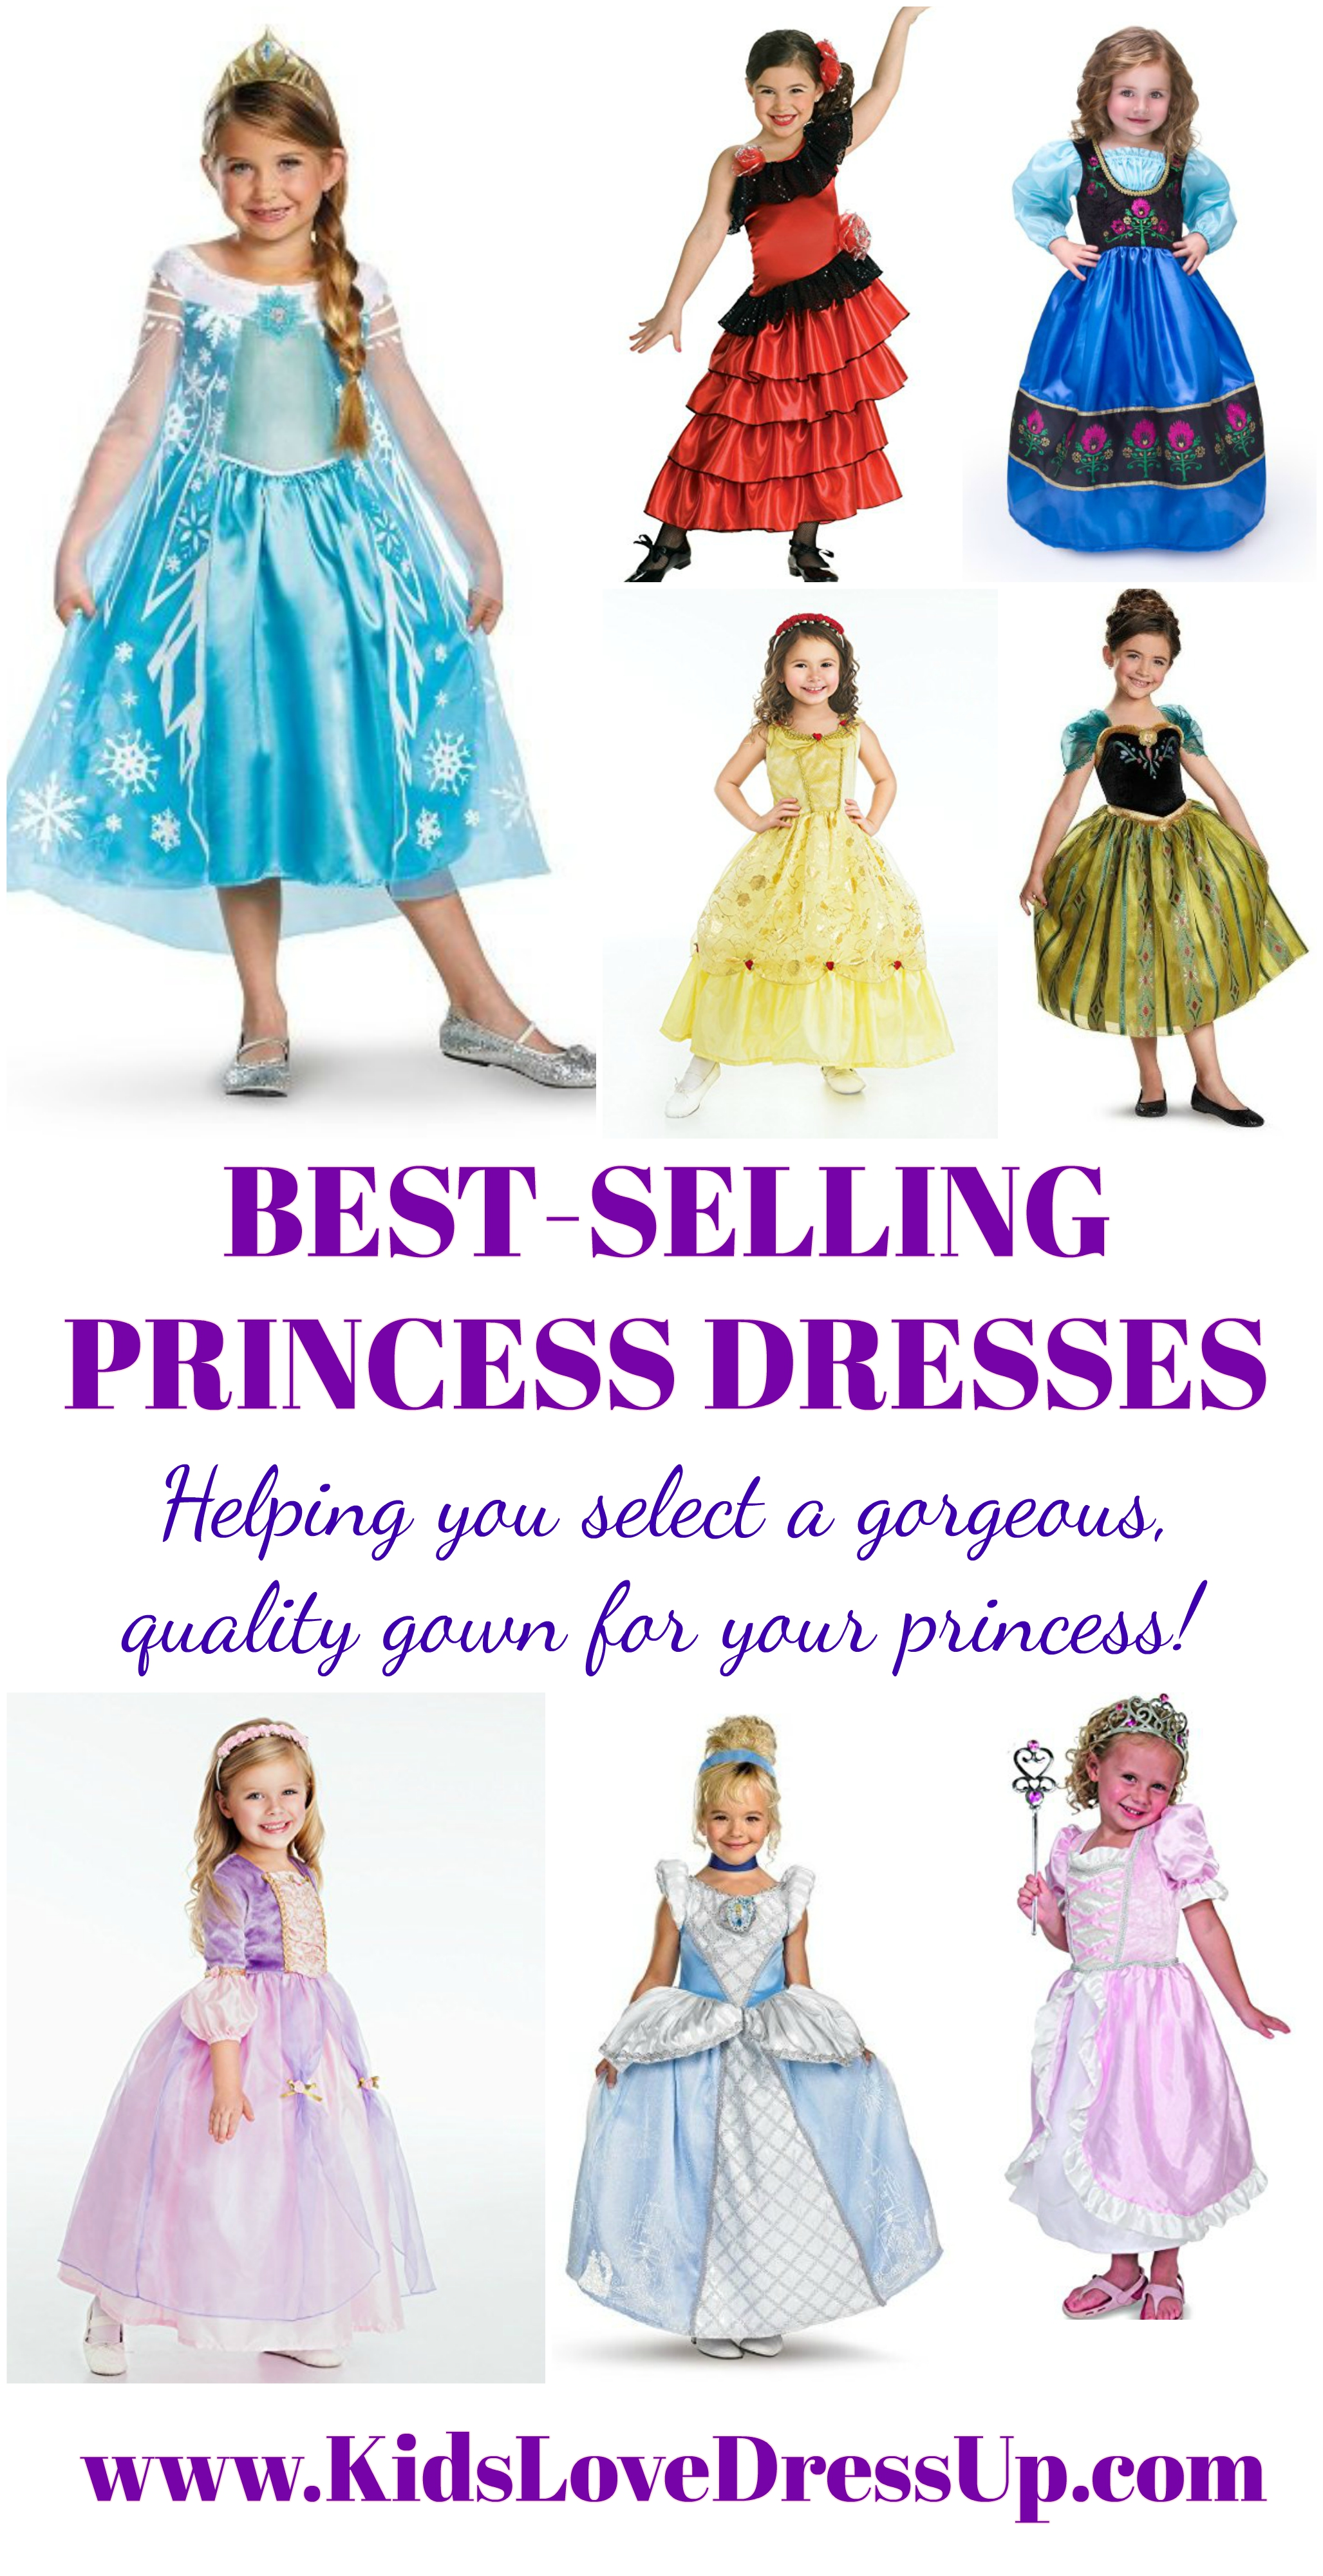 Looking for a gorgeous, great quality princess gown for your princess? Look no further - here are 10 highly rated, heavily reviewed princess gowns that will be well loved by your little girl! Princess gowns, princess costumes, costumes for girls, toddler girls costumes